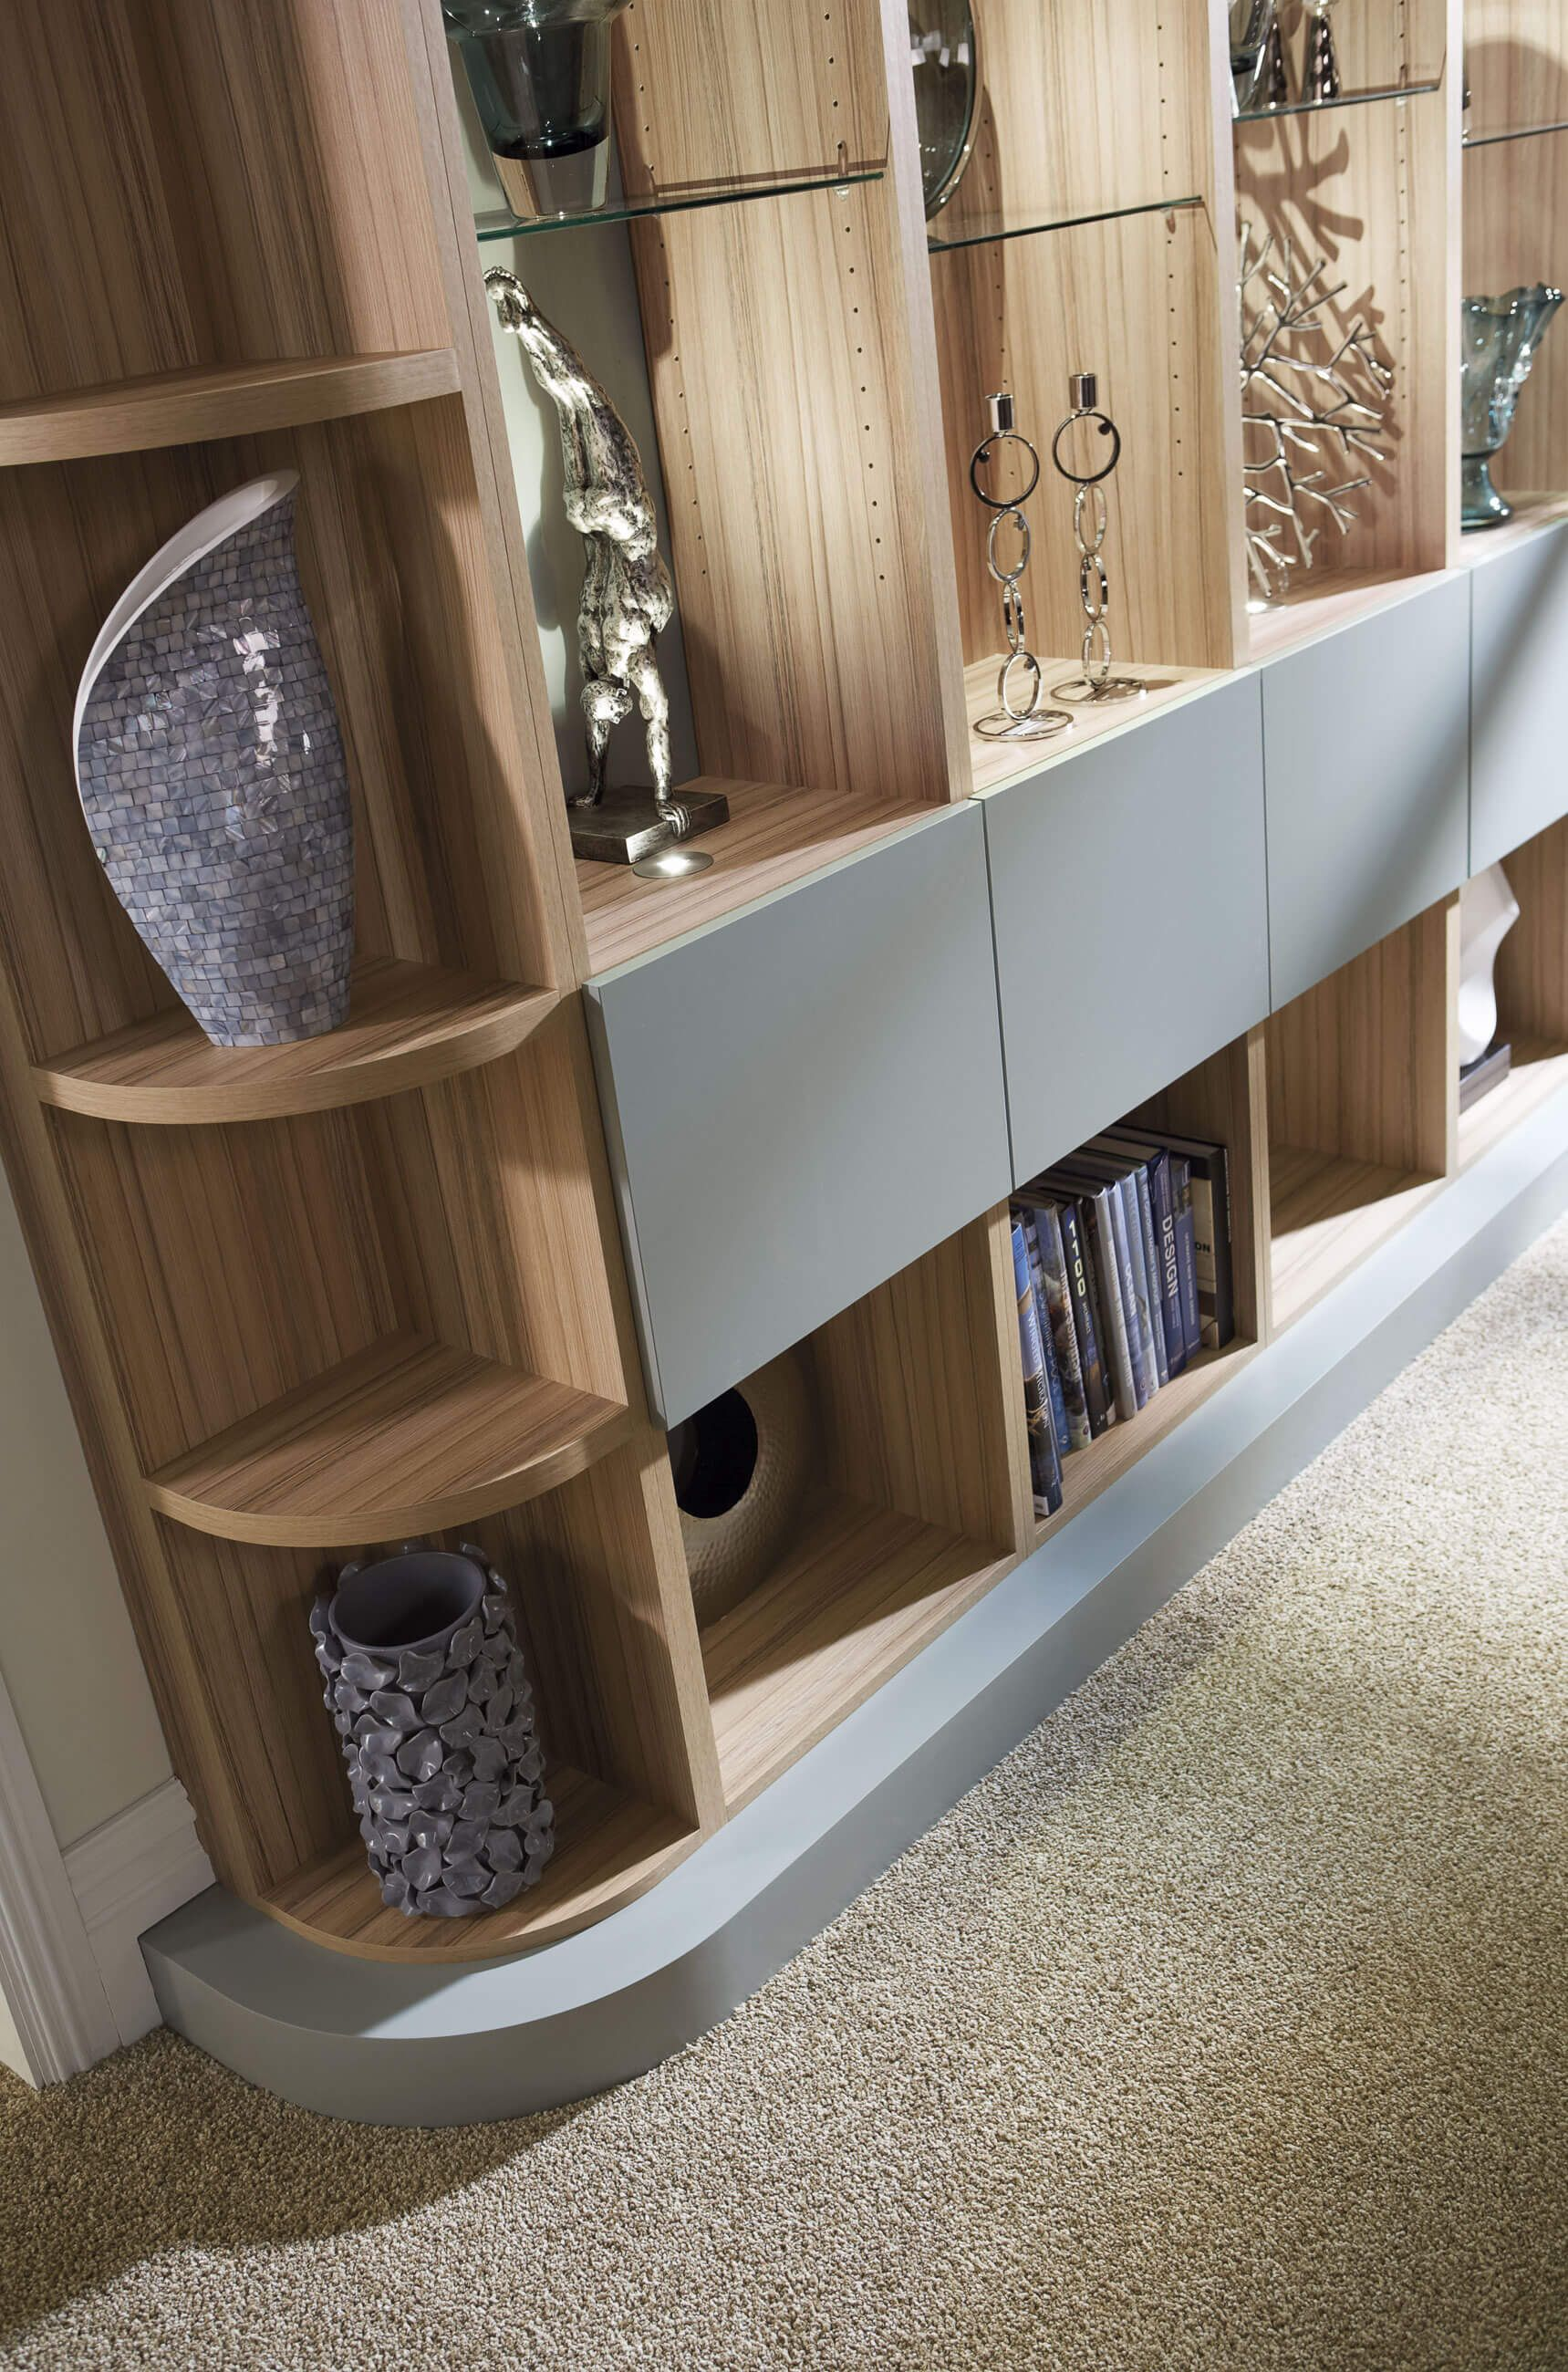 This grey modern library study has curved edges to fit with the flow of the room special features include a coordinating ladder and curved worktops